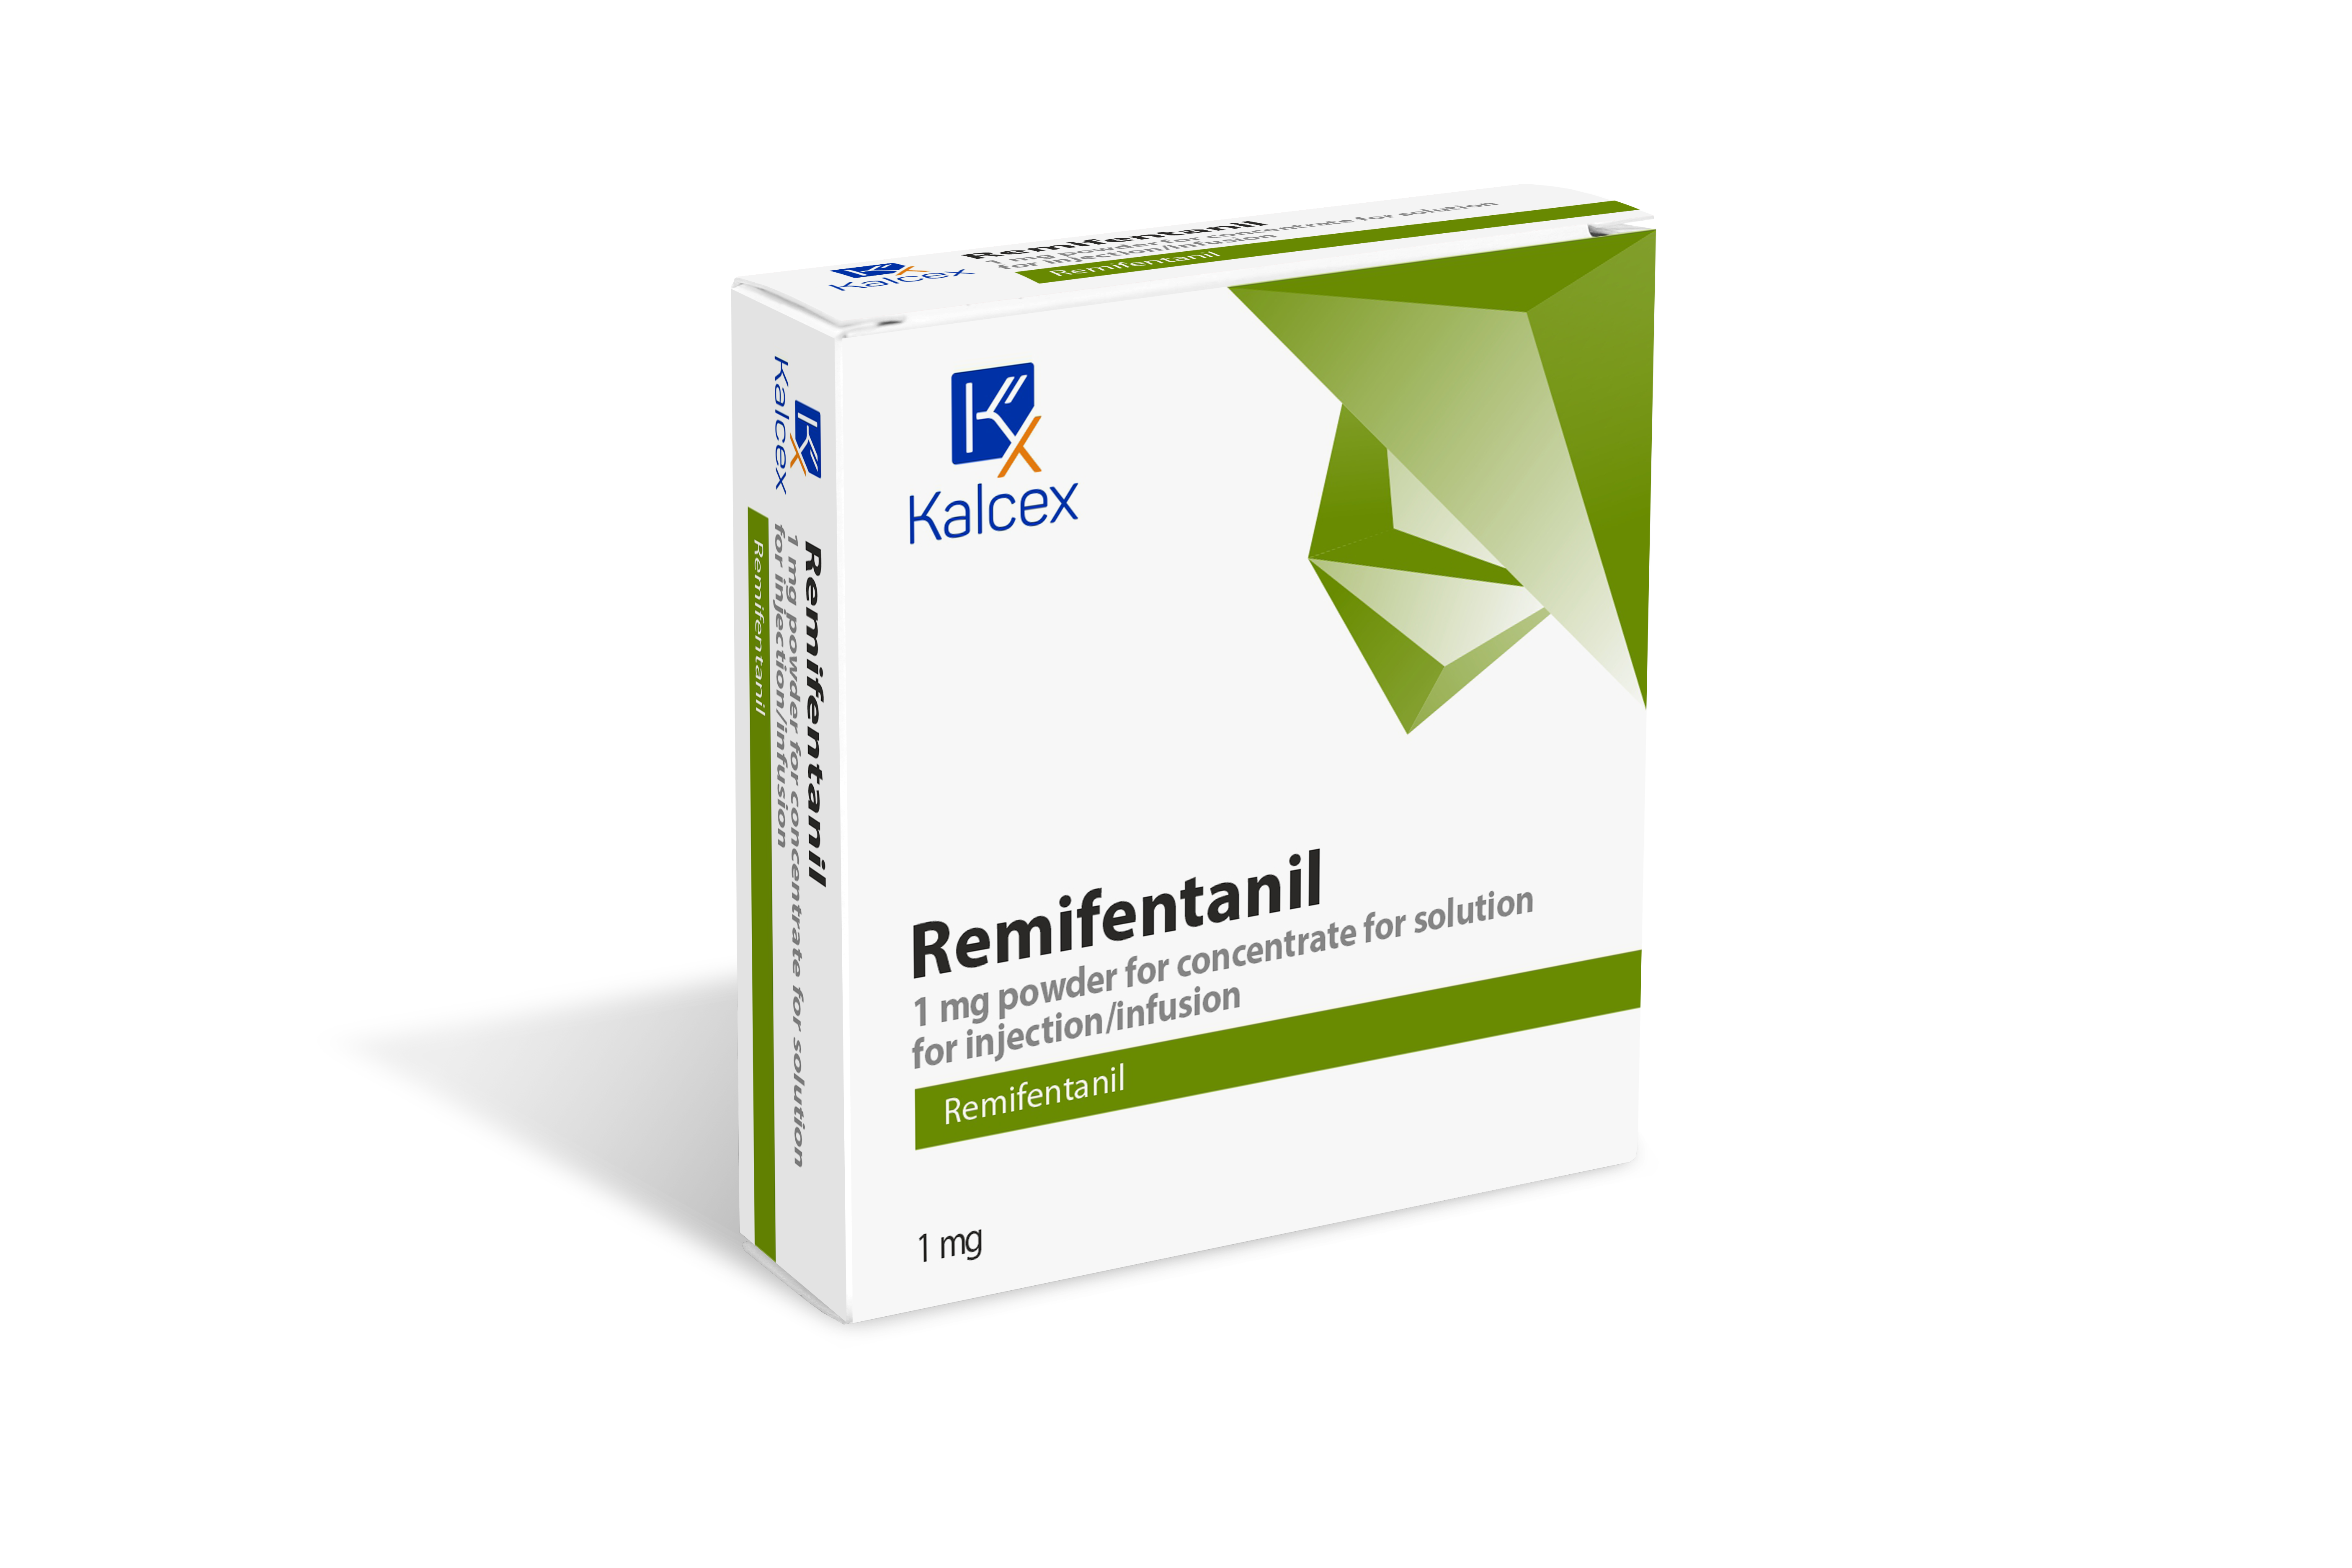 Remifentanil powder for concentrate for solution for injection/infusion*